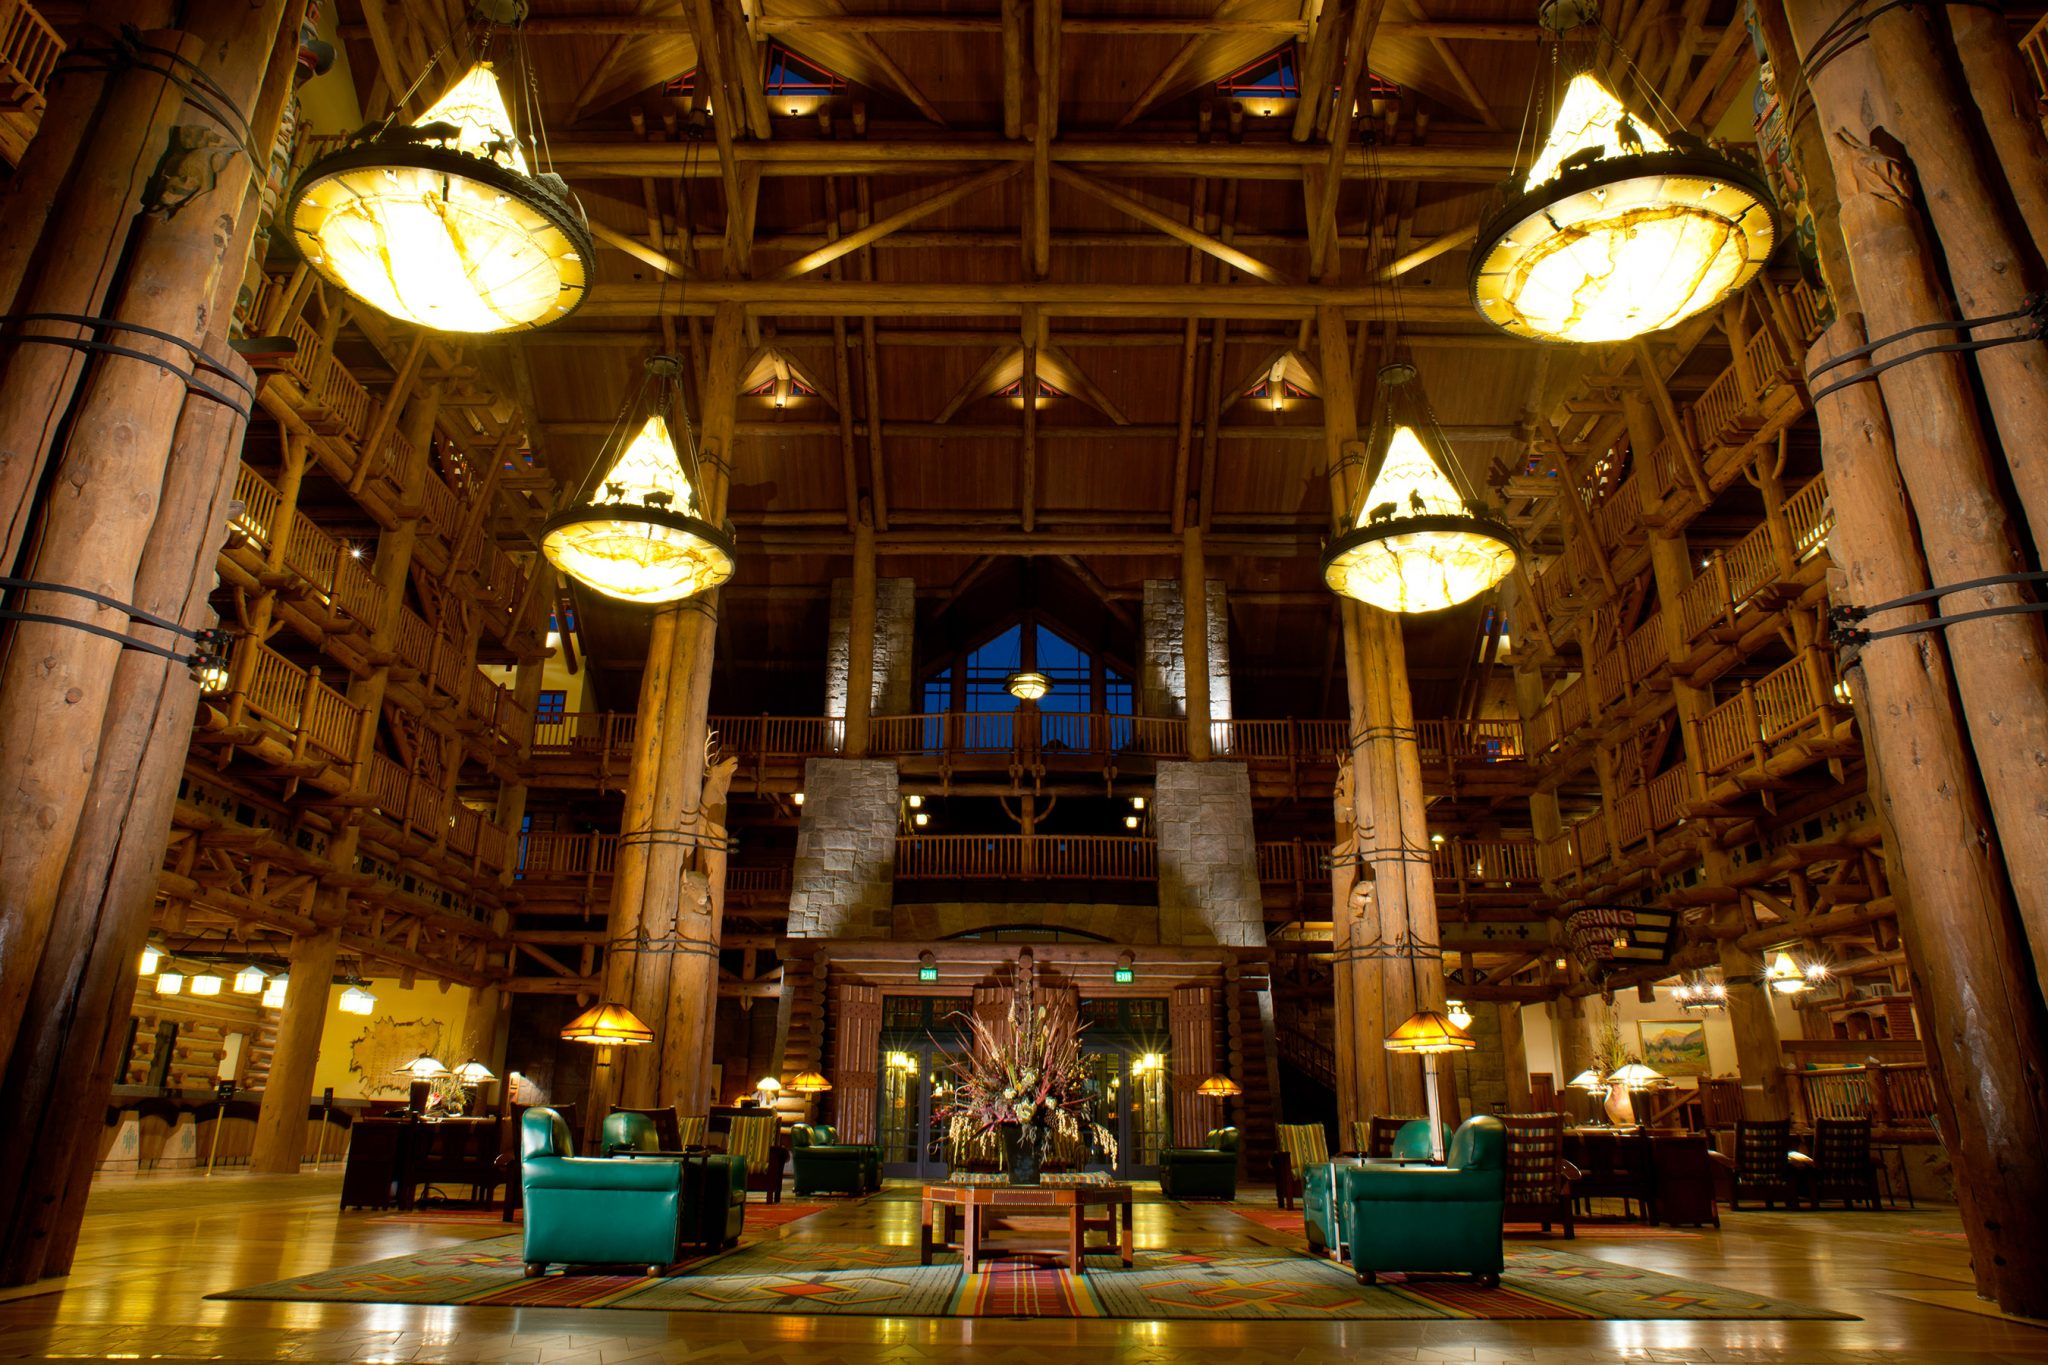 ResortLoop.com Episode 56 – Top 3 Resort Lobbies